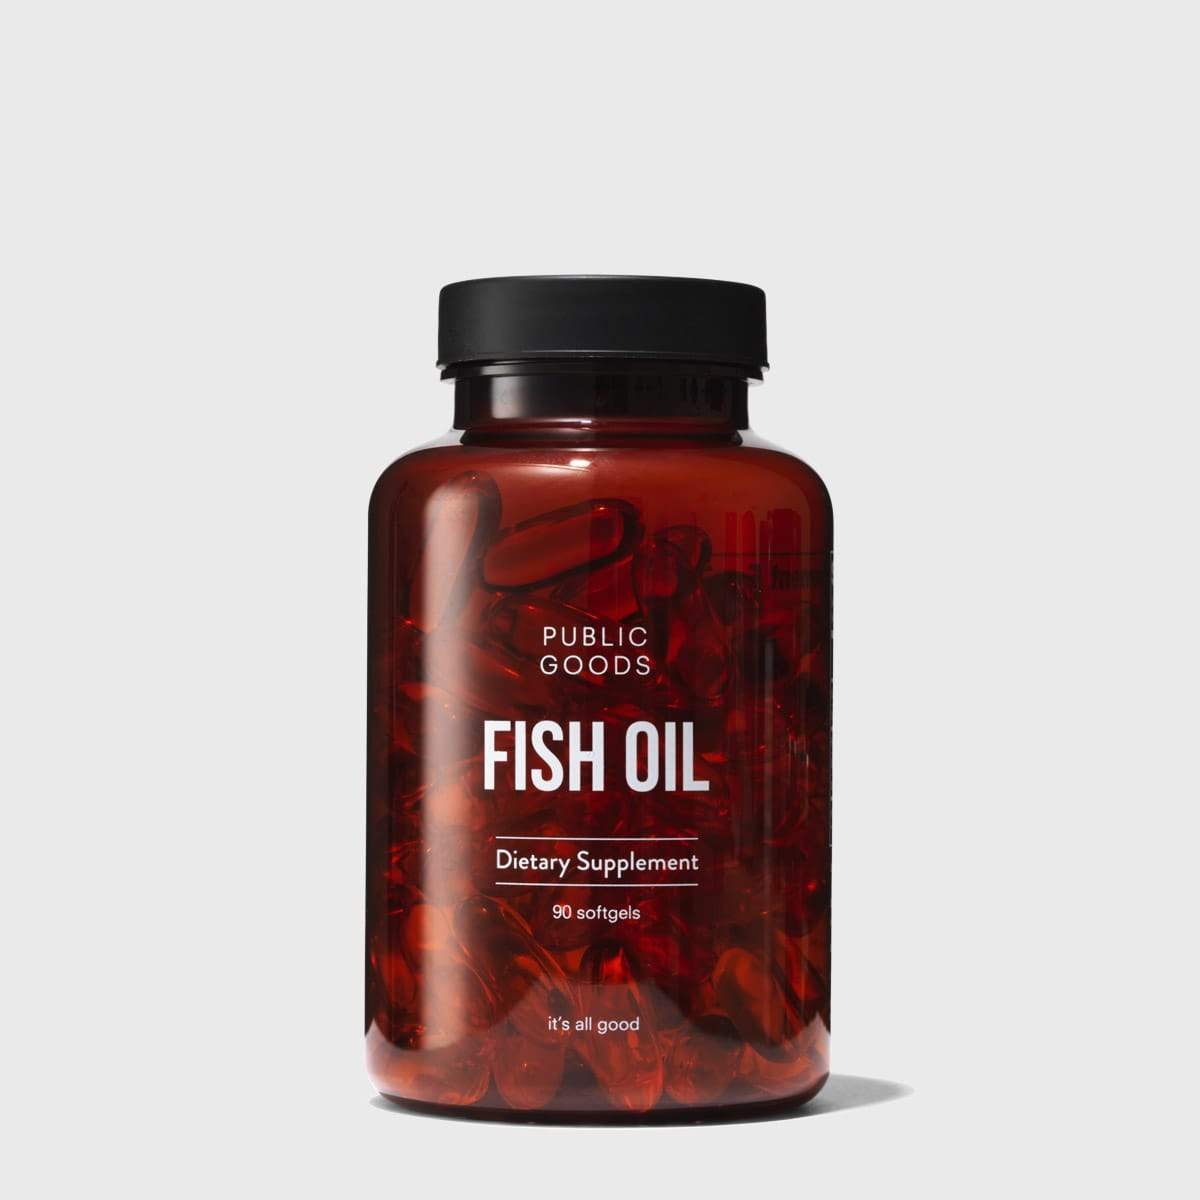 Public Goods Supplement Fish Oil